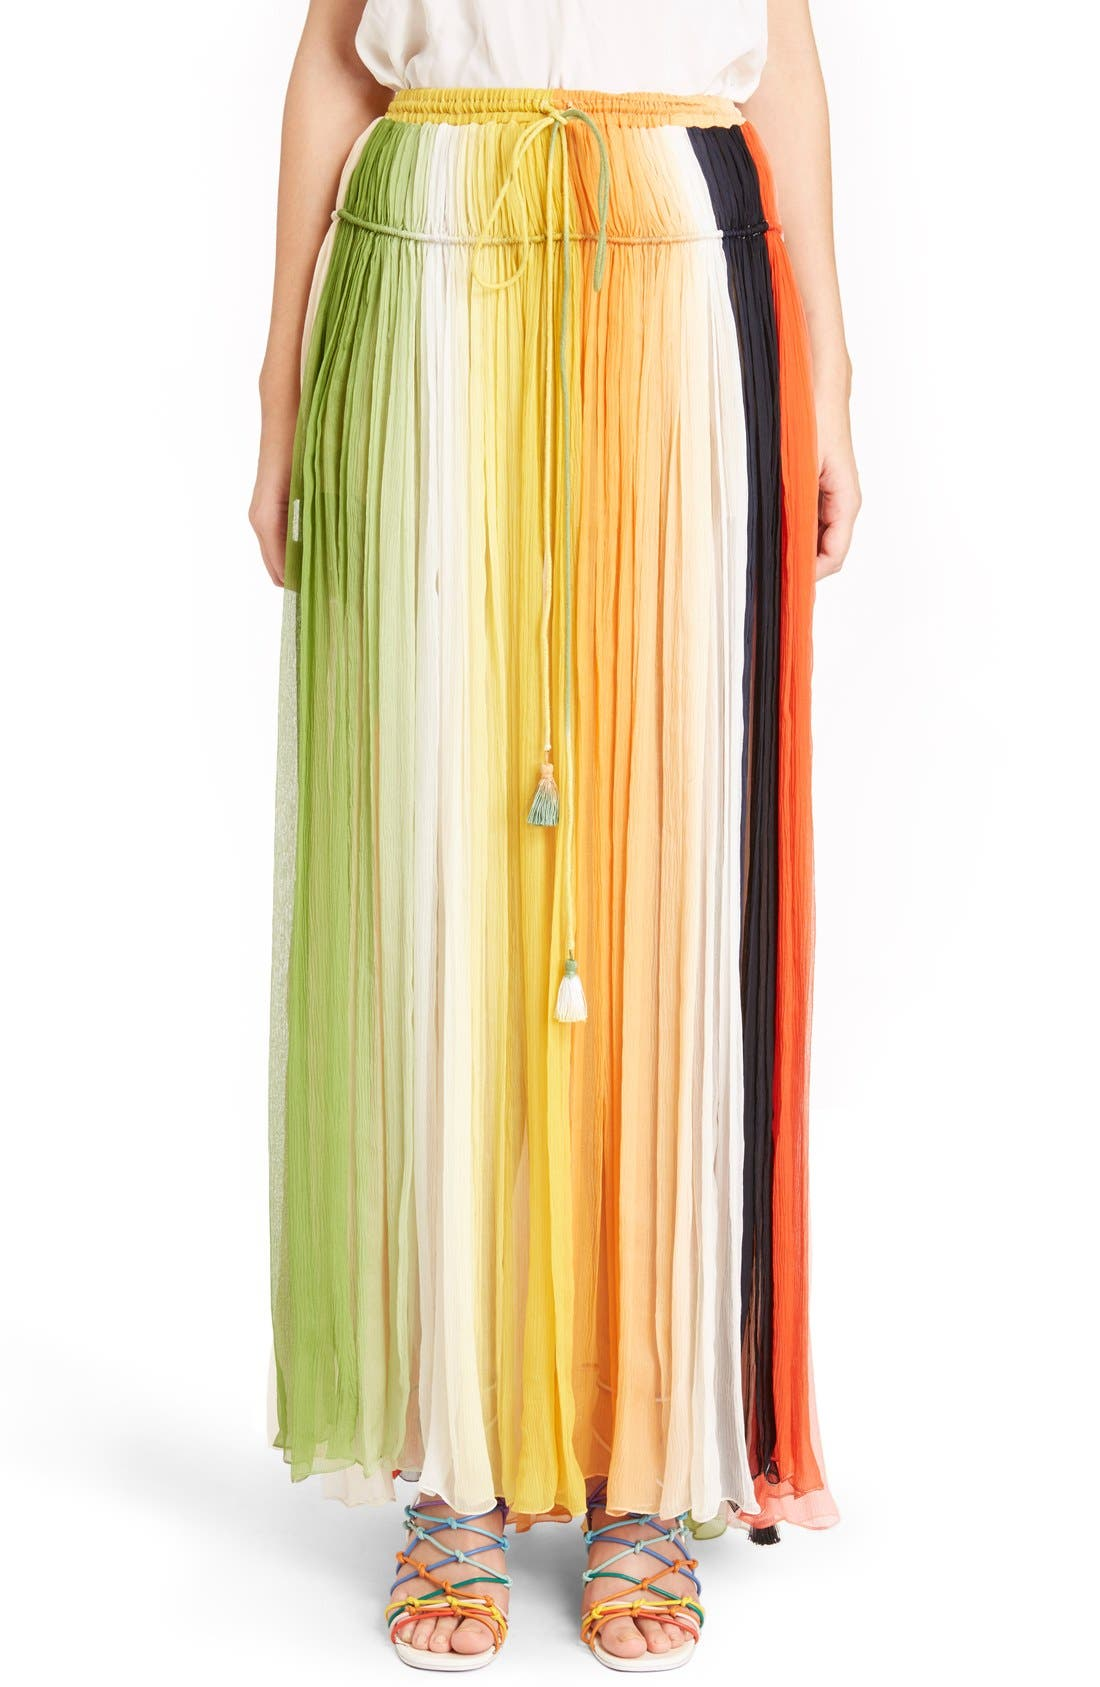 Alternate Image 1 Selected - Chloé Stripe Pleated Silk Skirt with Tassels